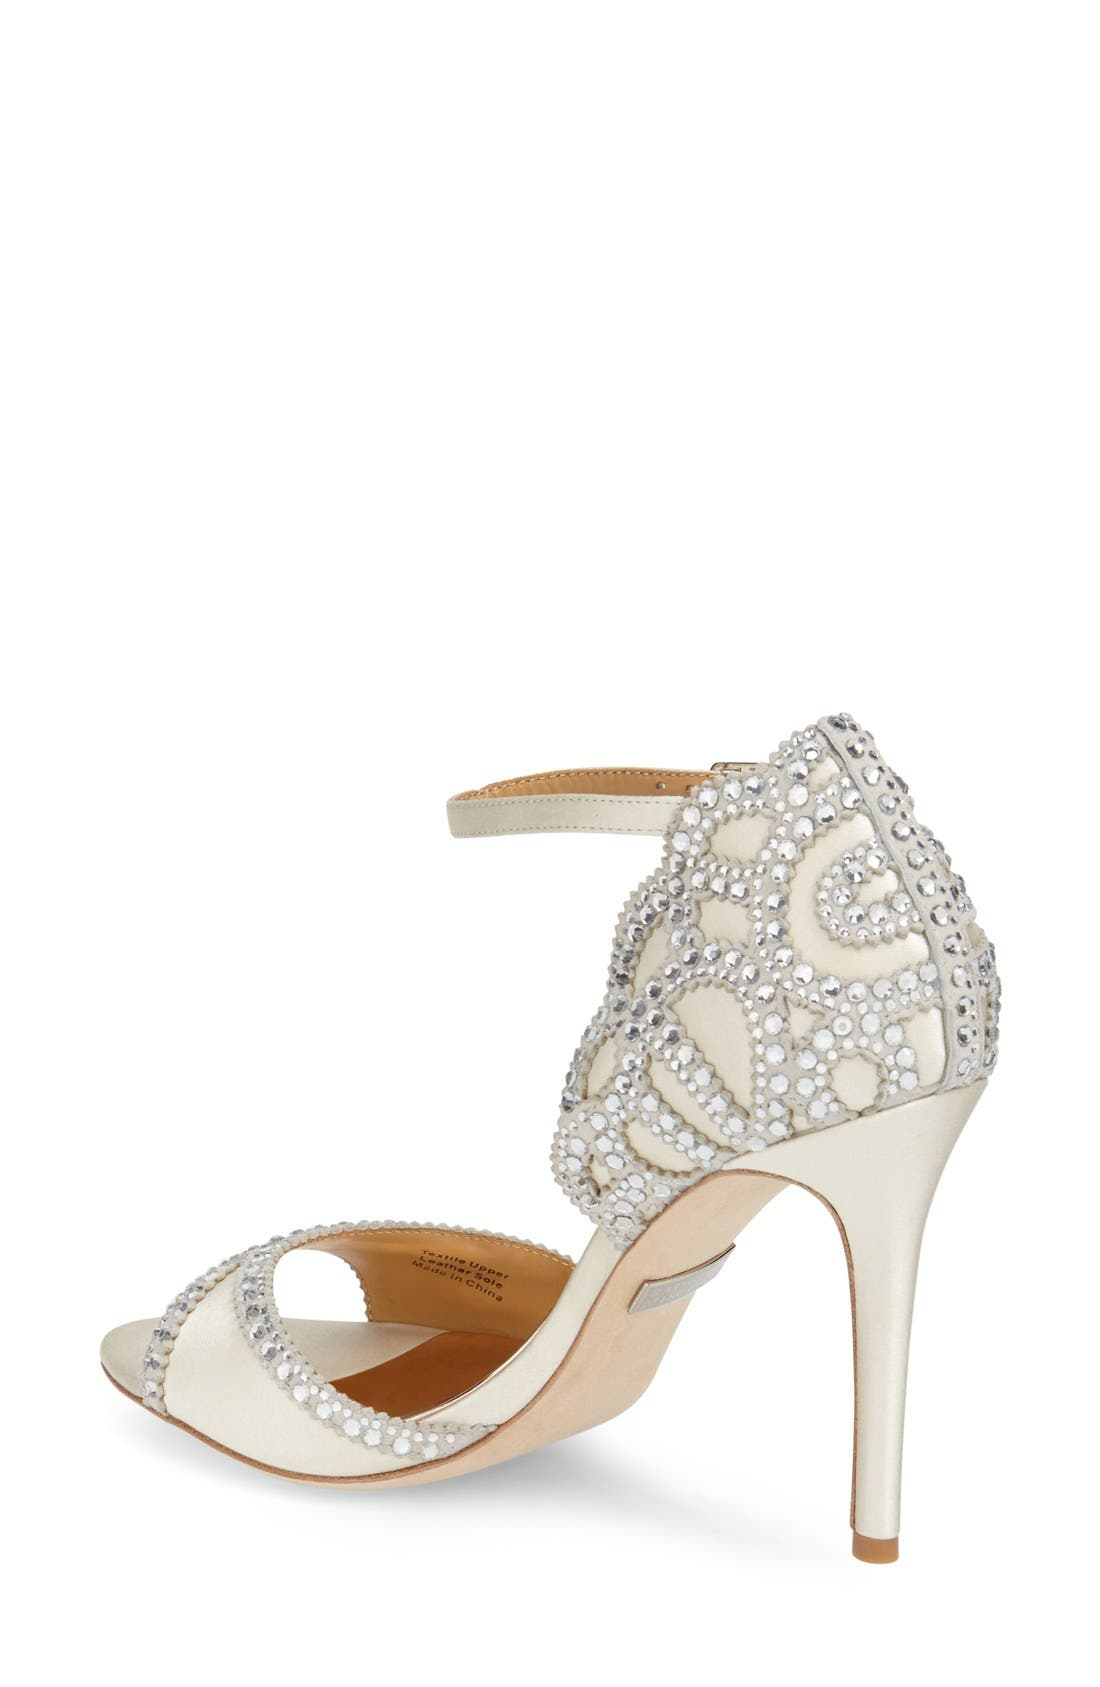 Alternate Image 2  - Badgley Mischka 'Roxy' Sandal (Women)